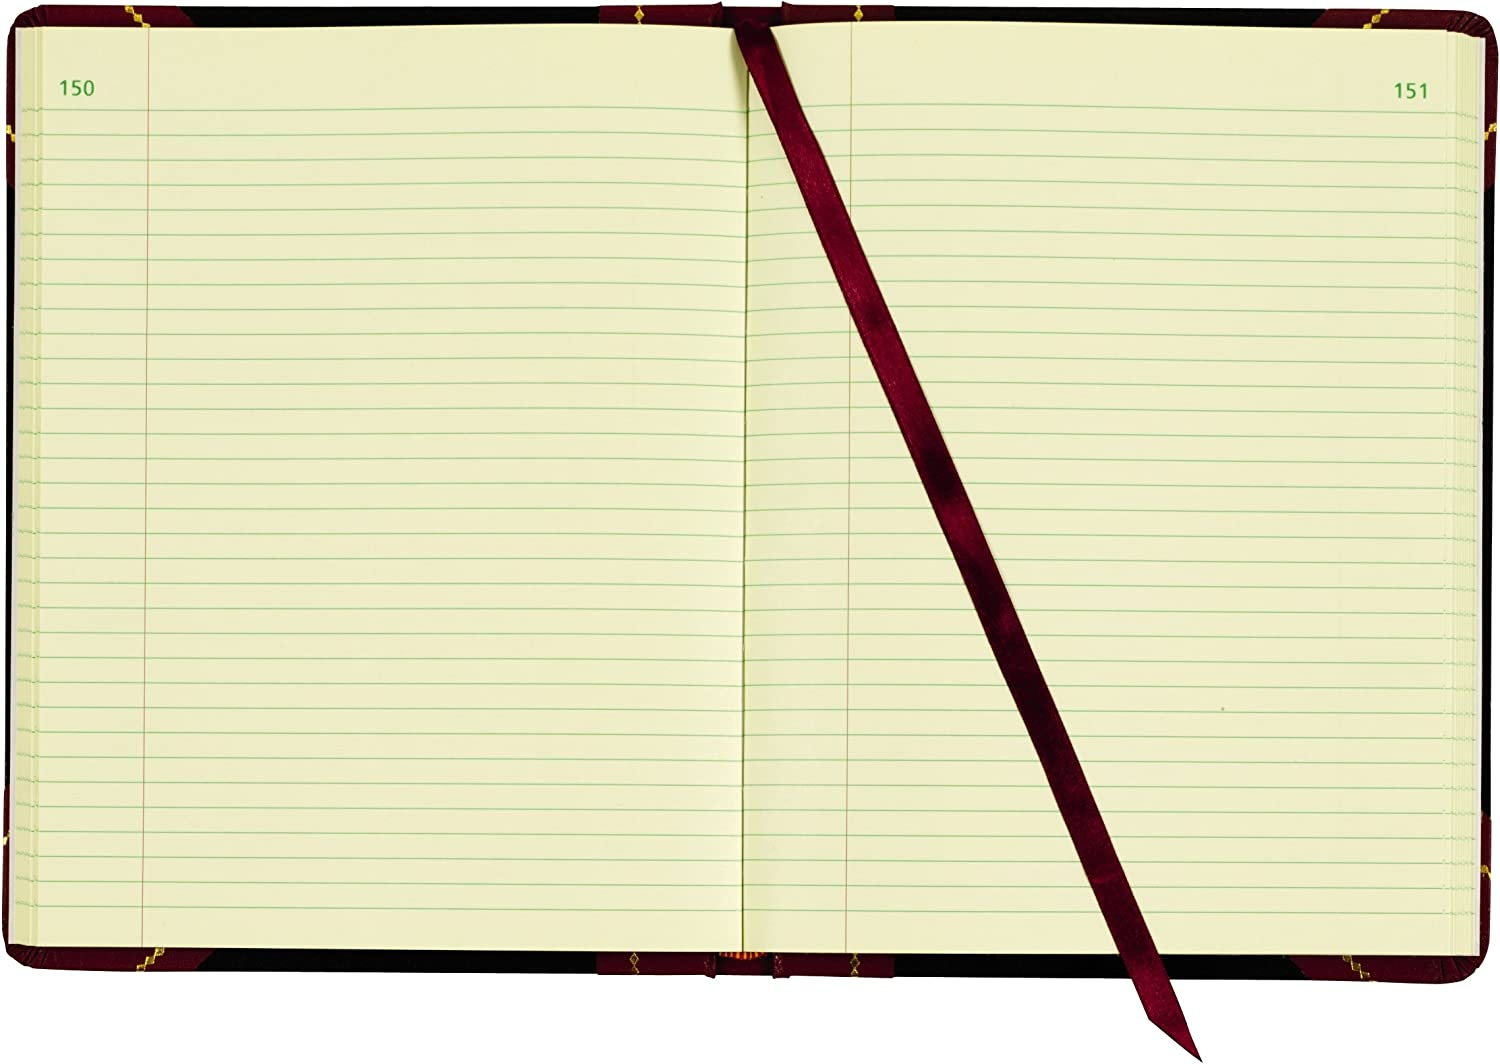 Adams Record Ledger, 8.25 x 10.75 Inches, 5 Squares per Inch, 300 Tinted Pages, Black and Maroon (ARB810R3M) : Record Books : Office Products